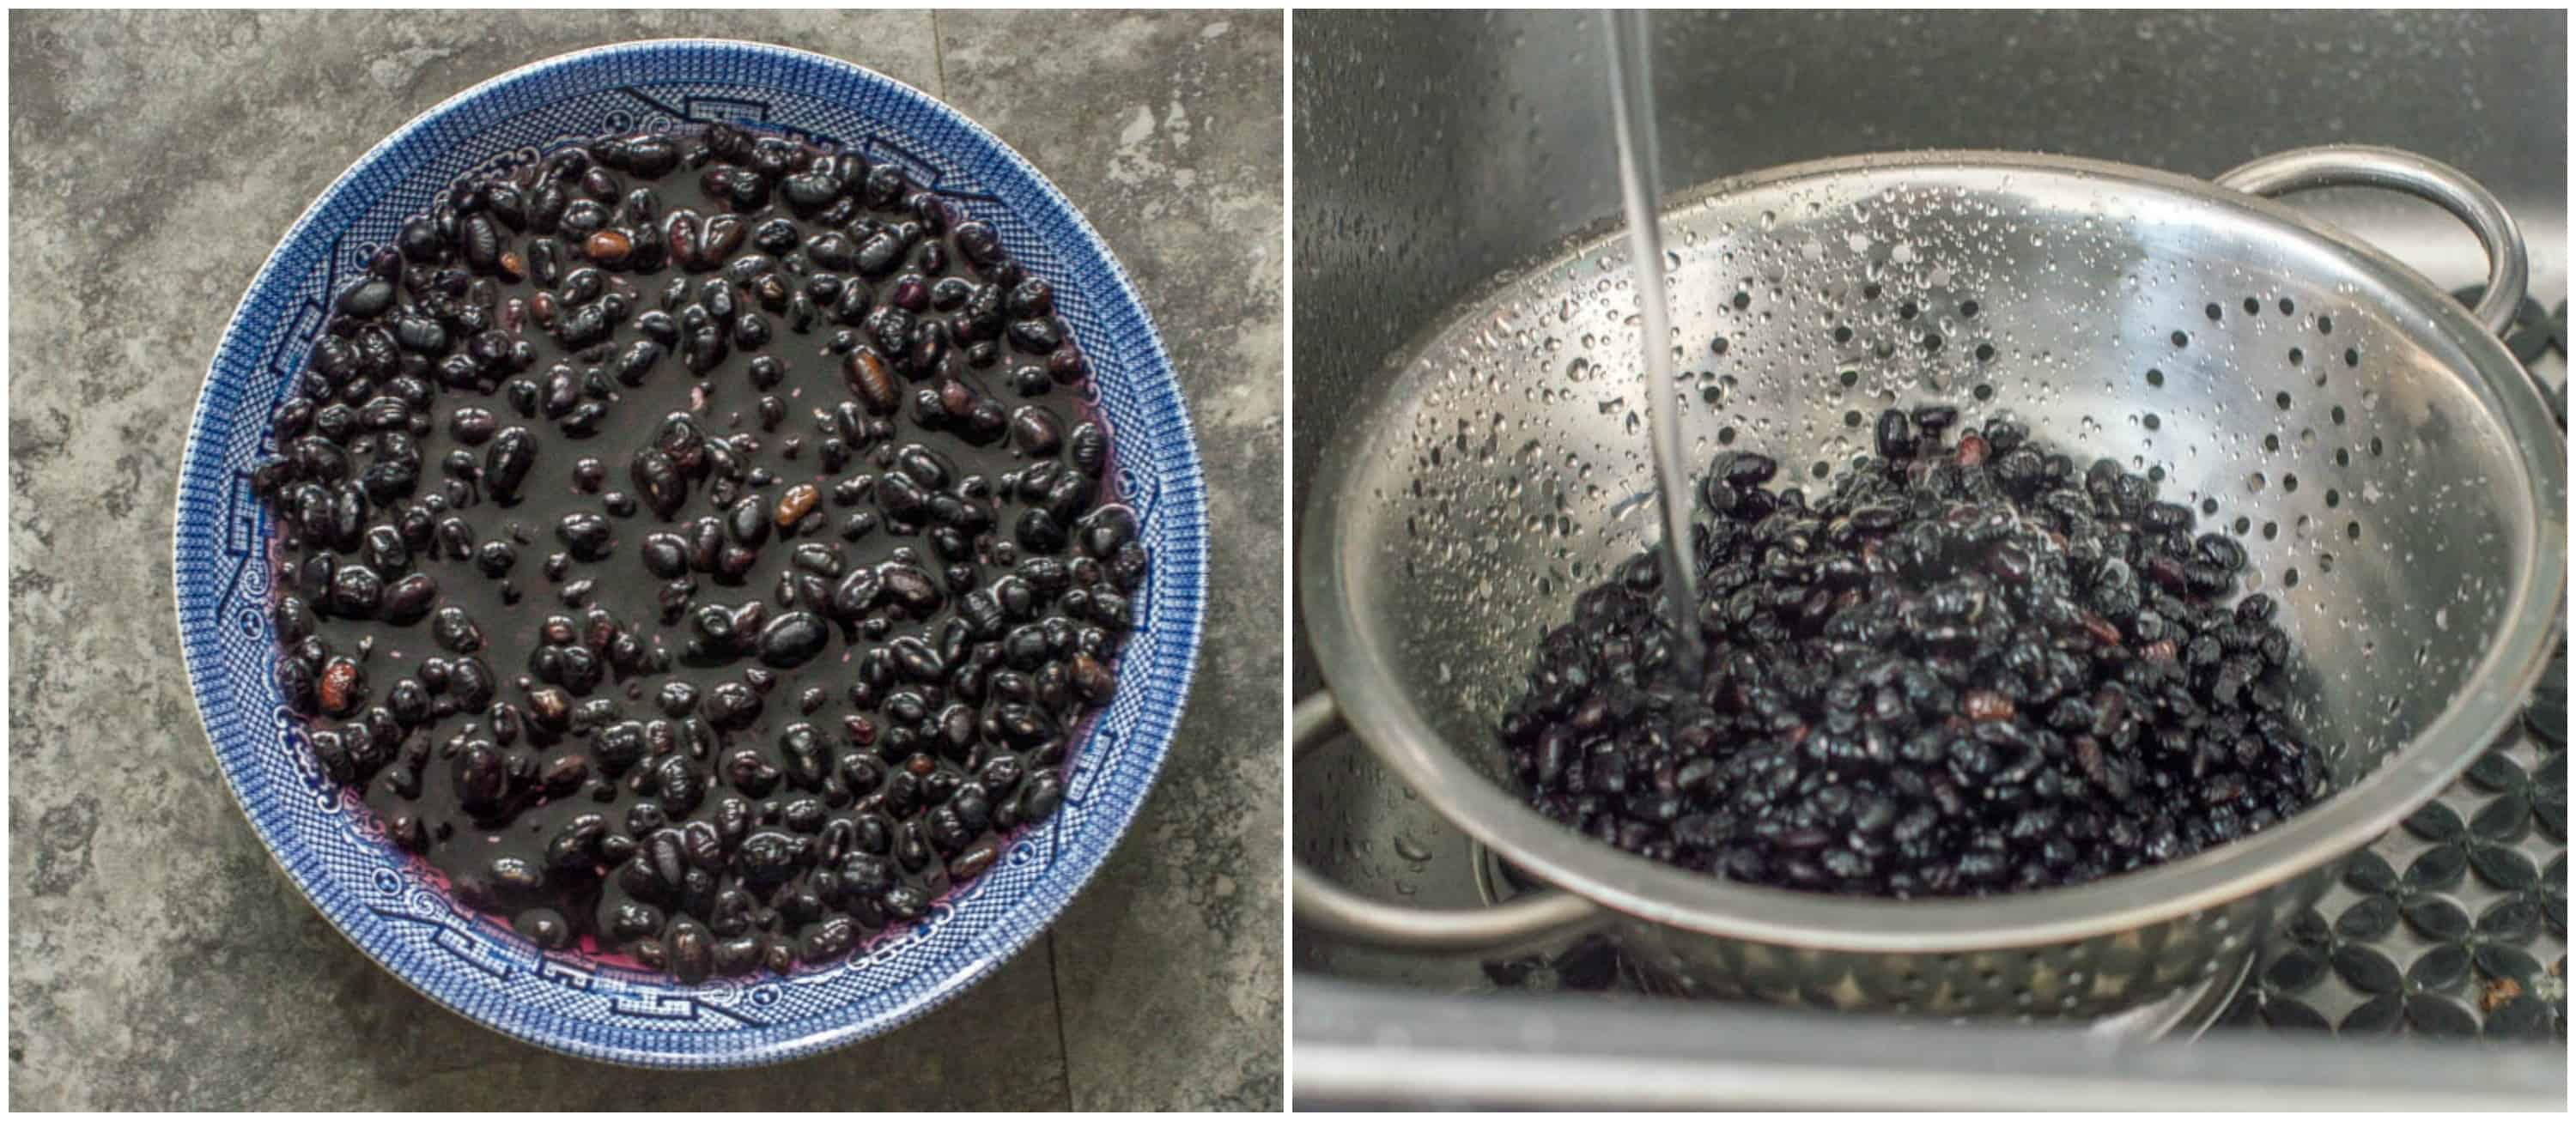 slow cooker black beans steps 1-2 soak and washing beans